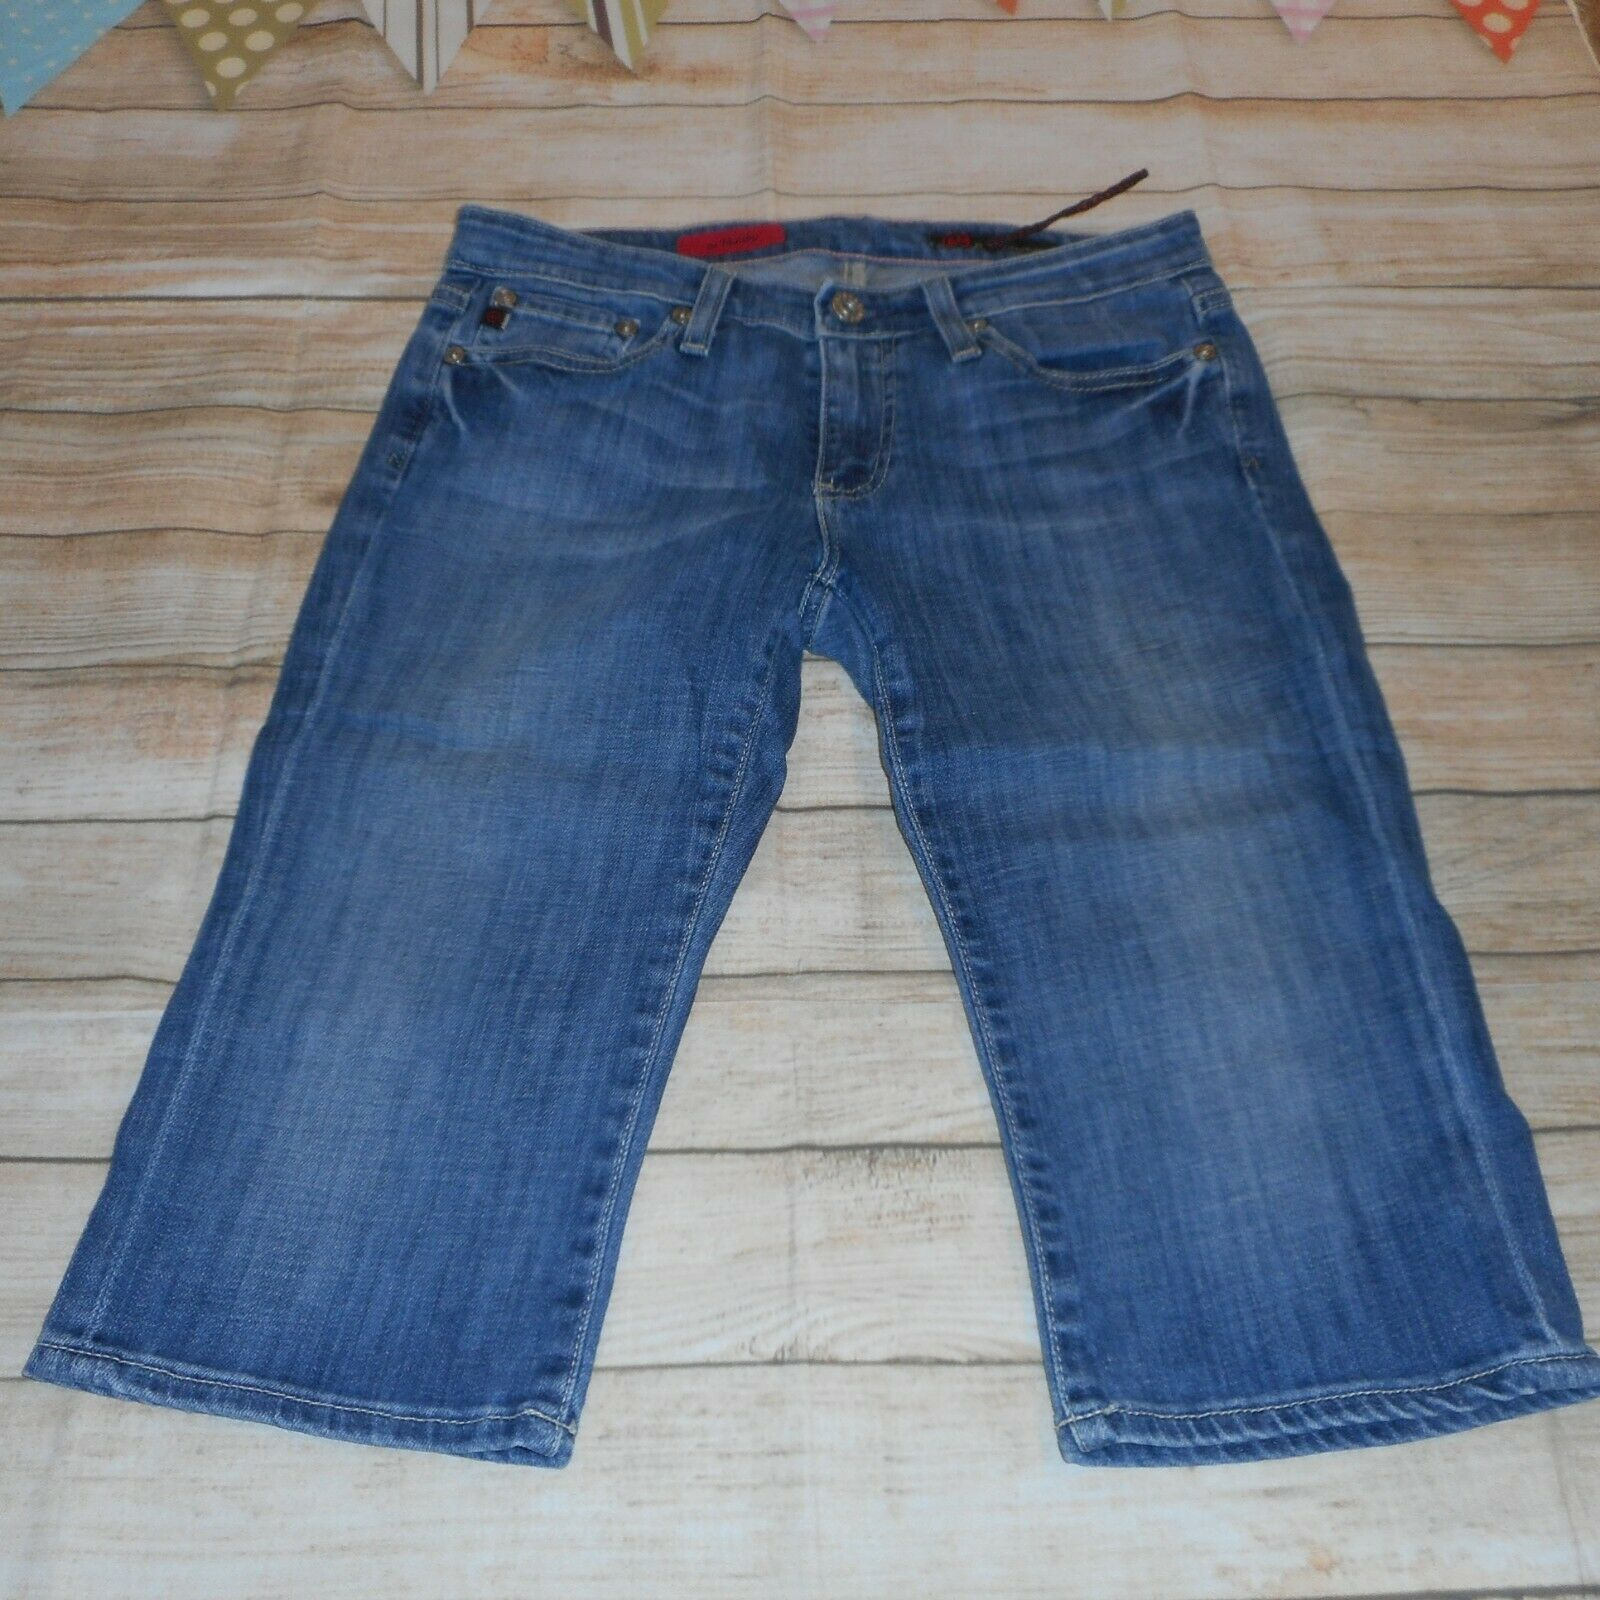 ADRIANO goldSCHMIED Sz 26 bluee Medium Wash Button Zipper Closure Jean Shorts